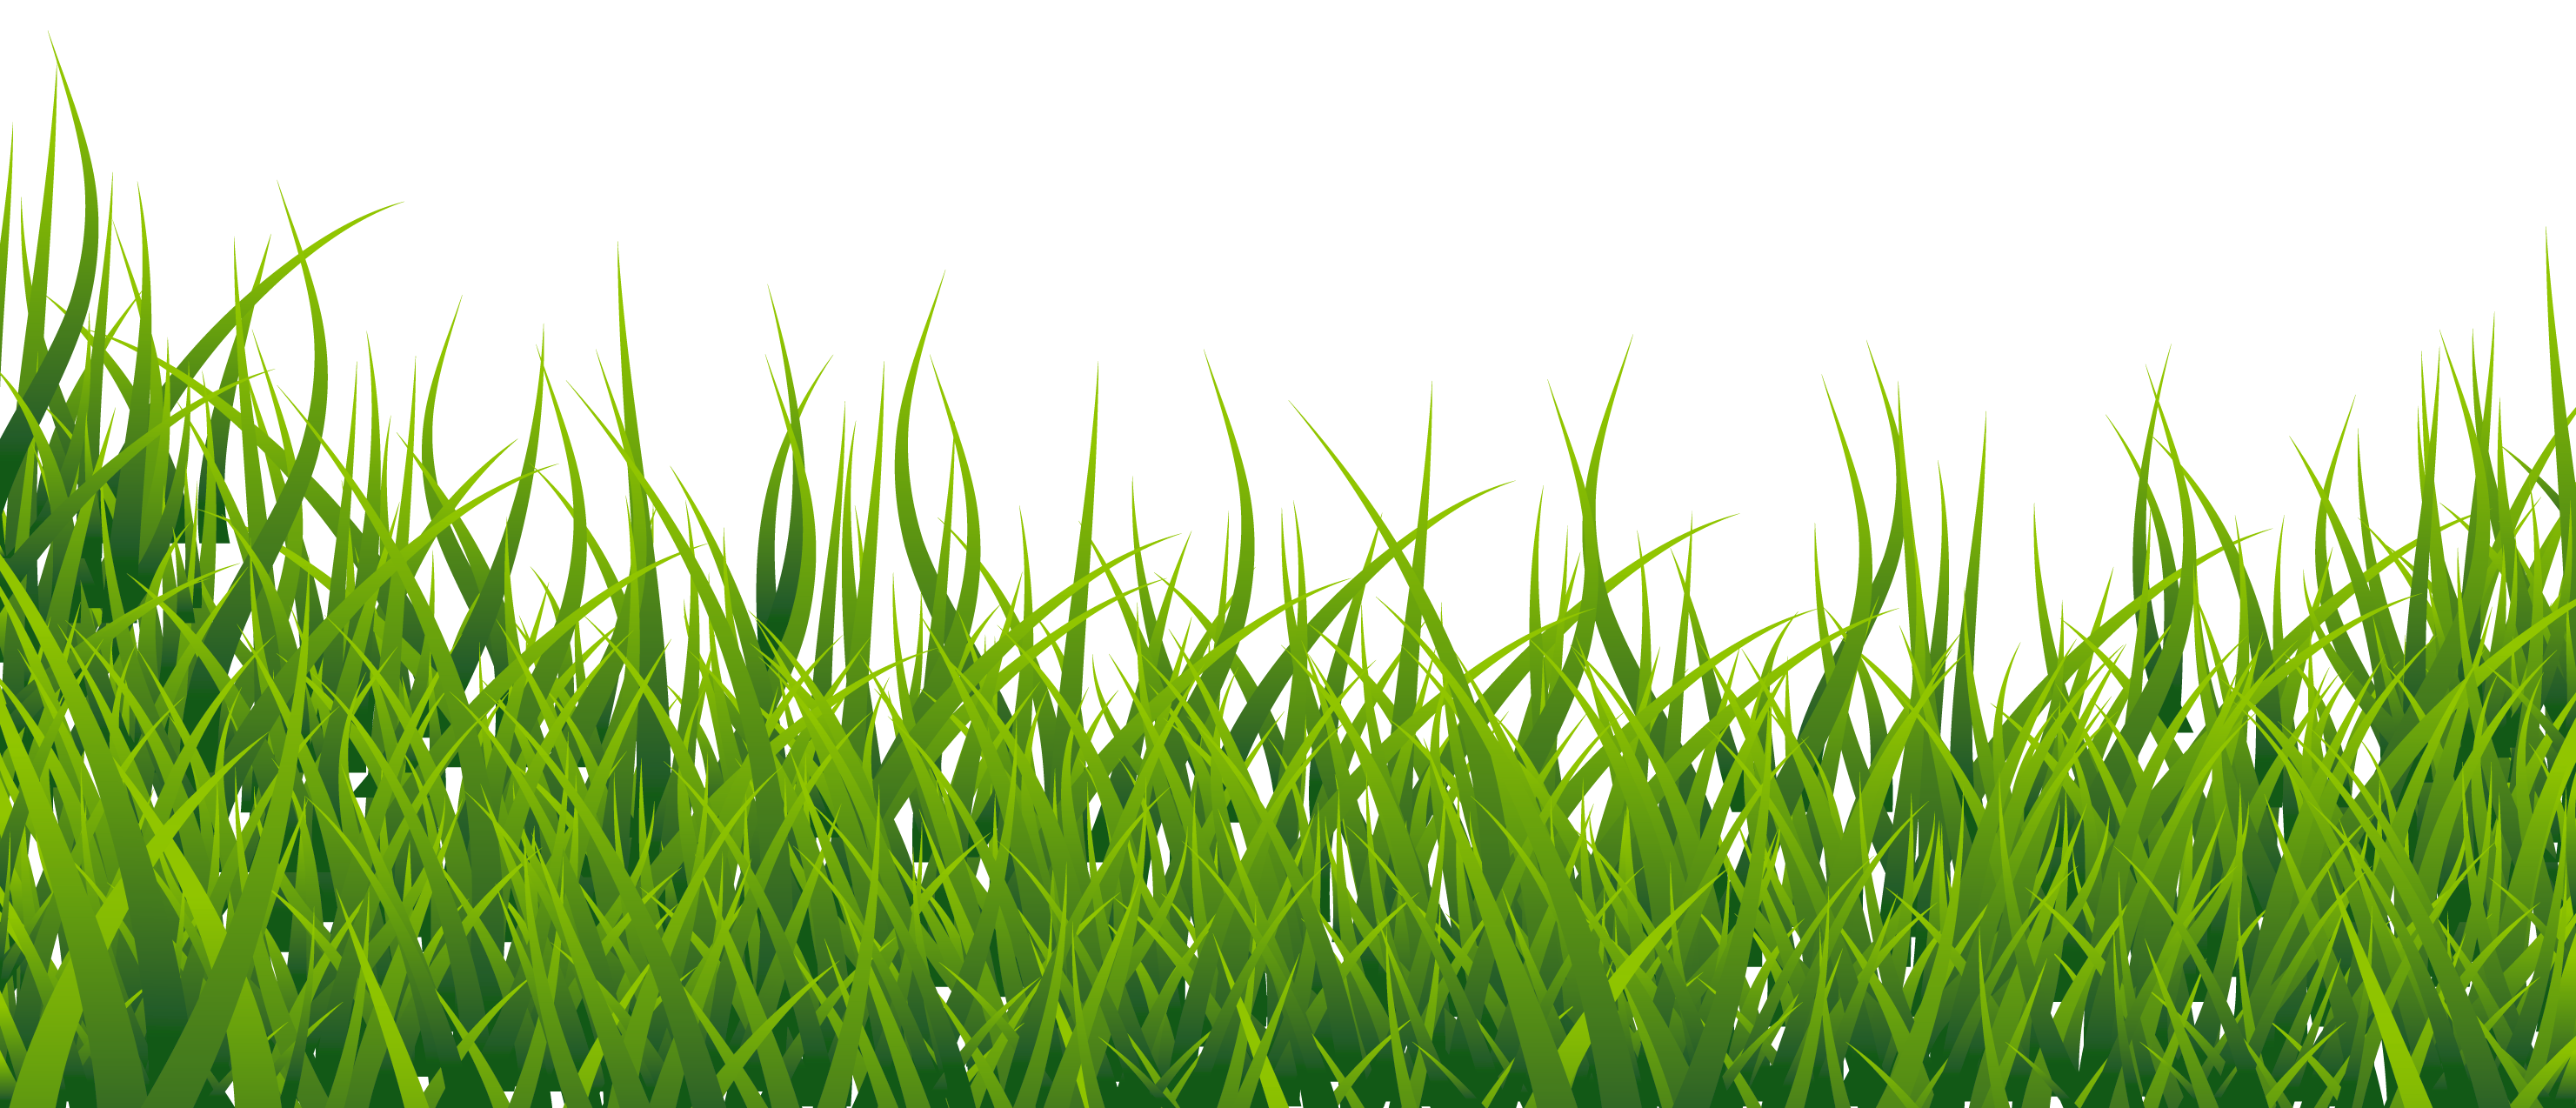 Grass Background Hd Images Artistic Joyful